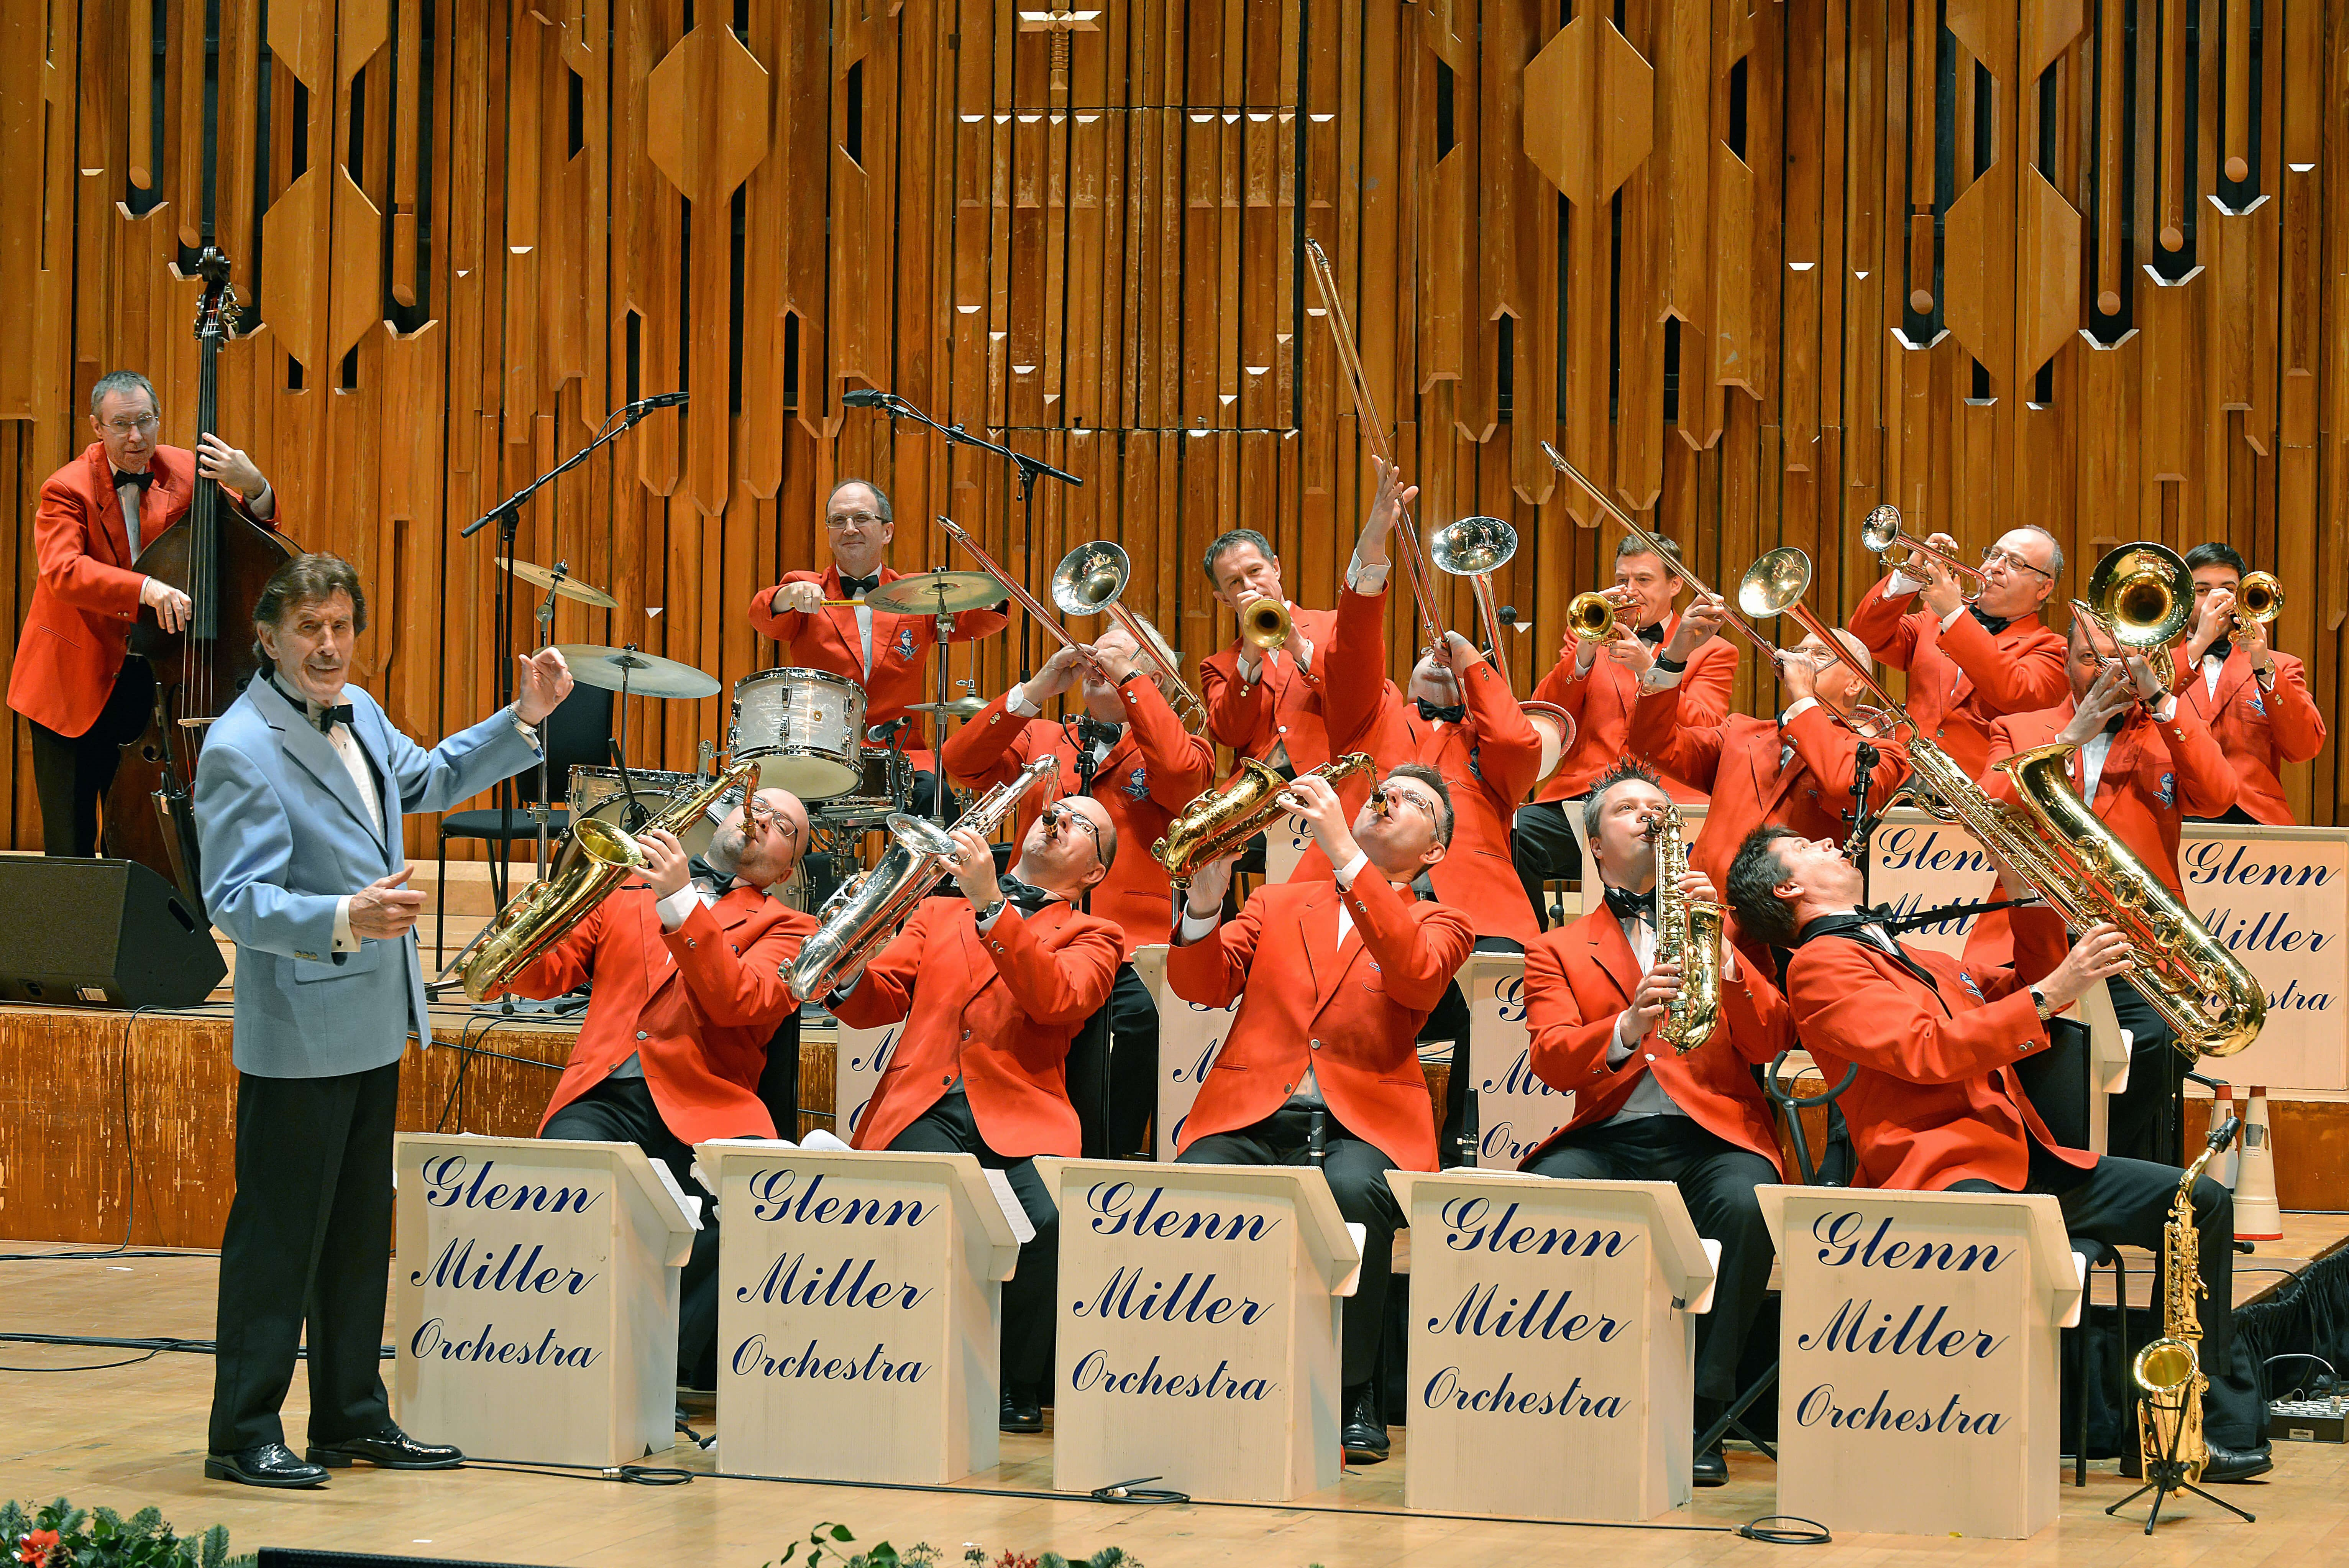 Spend Sunday afternoon with the Glenn Miller Orchestra